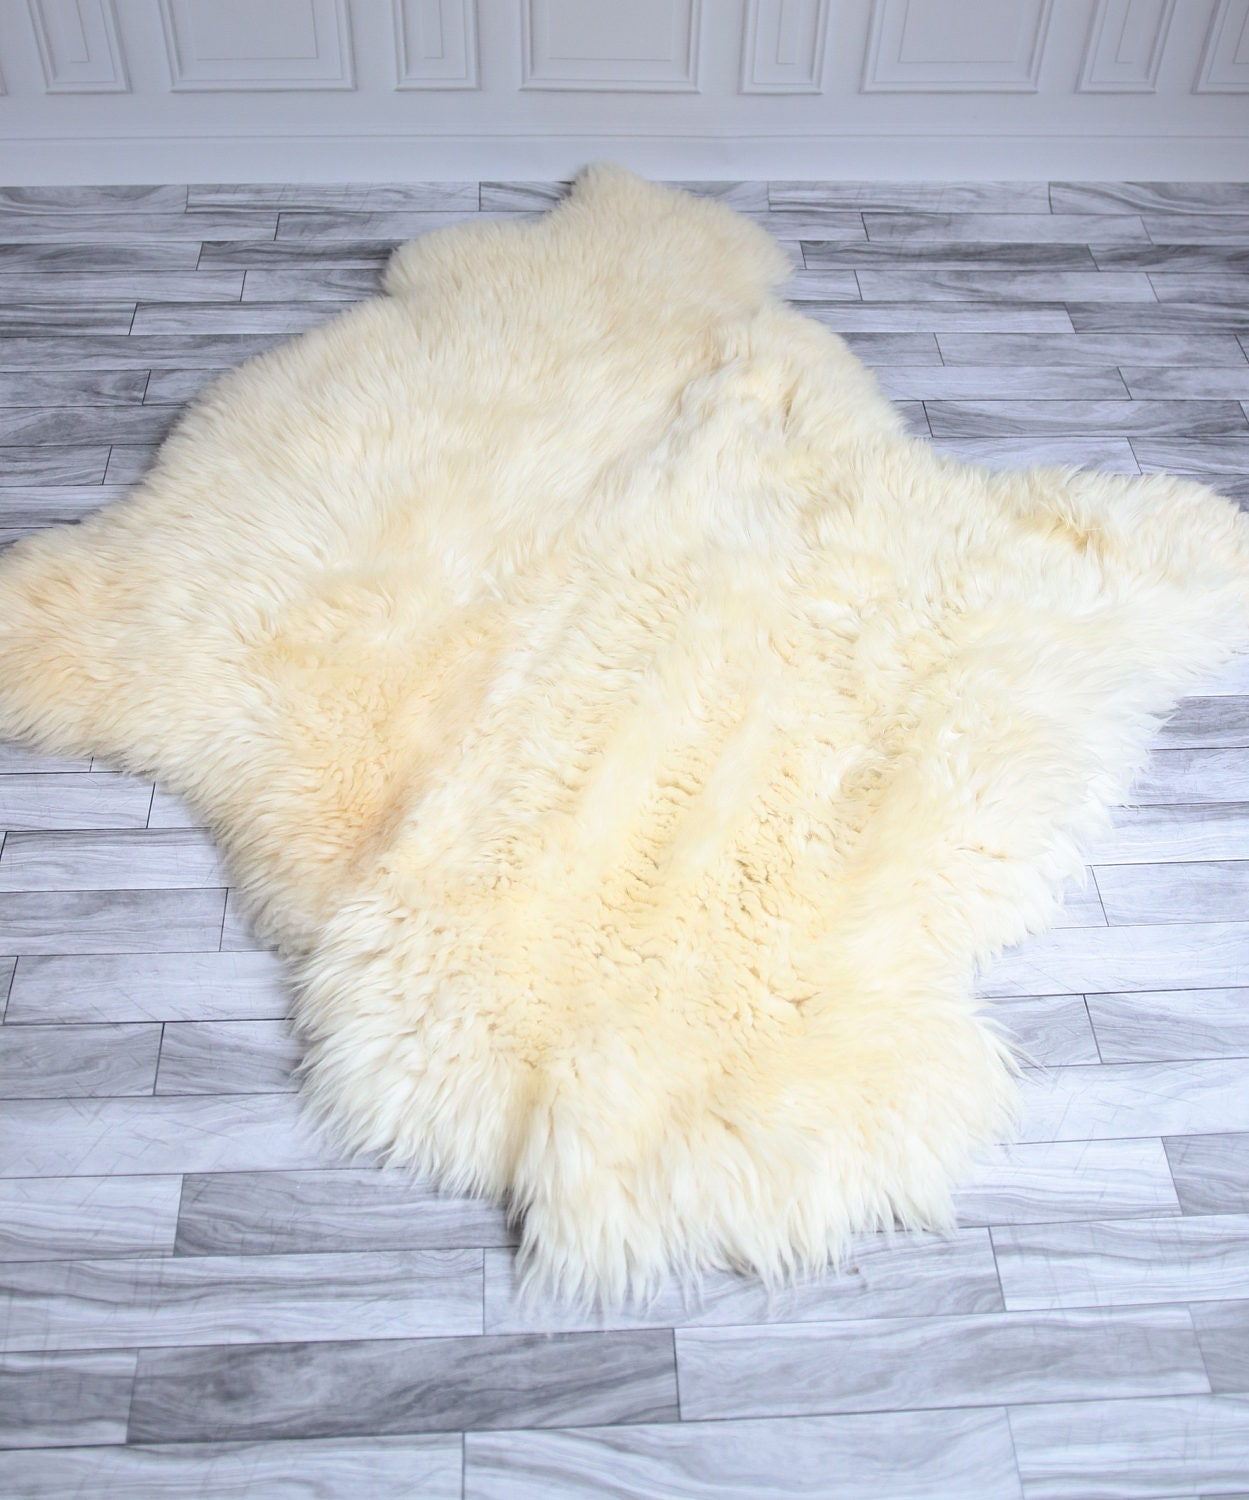 Sheepskin Rug Square: Double Sheepskin Rug Sale